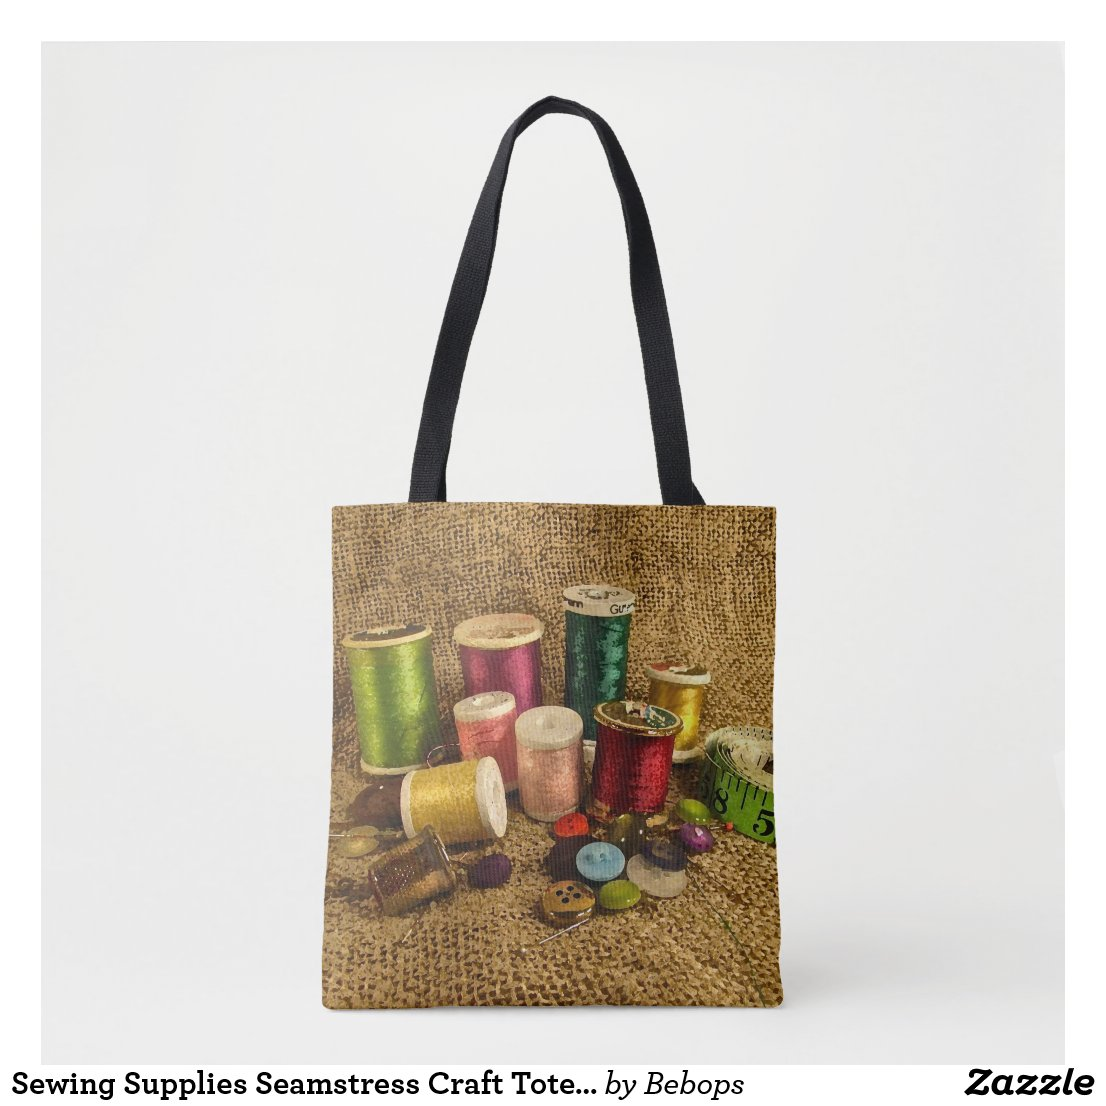 Sewing Supplies Seamstress Craft Tote Bag